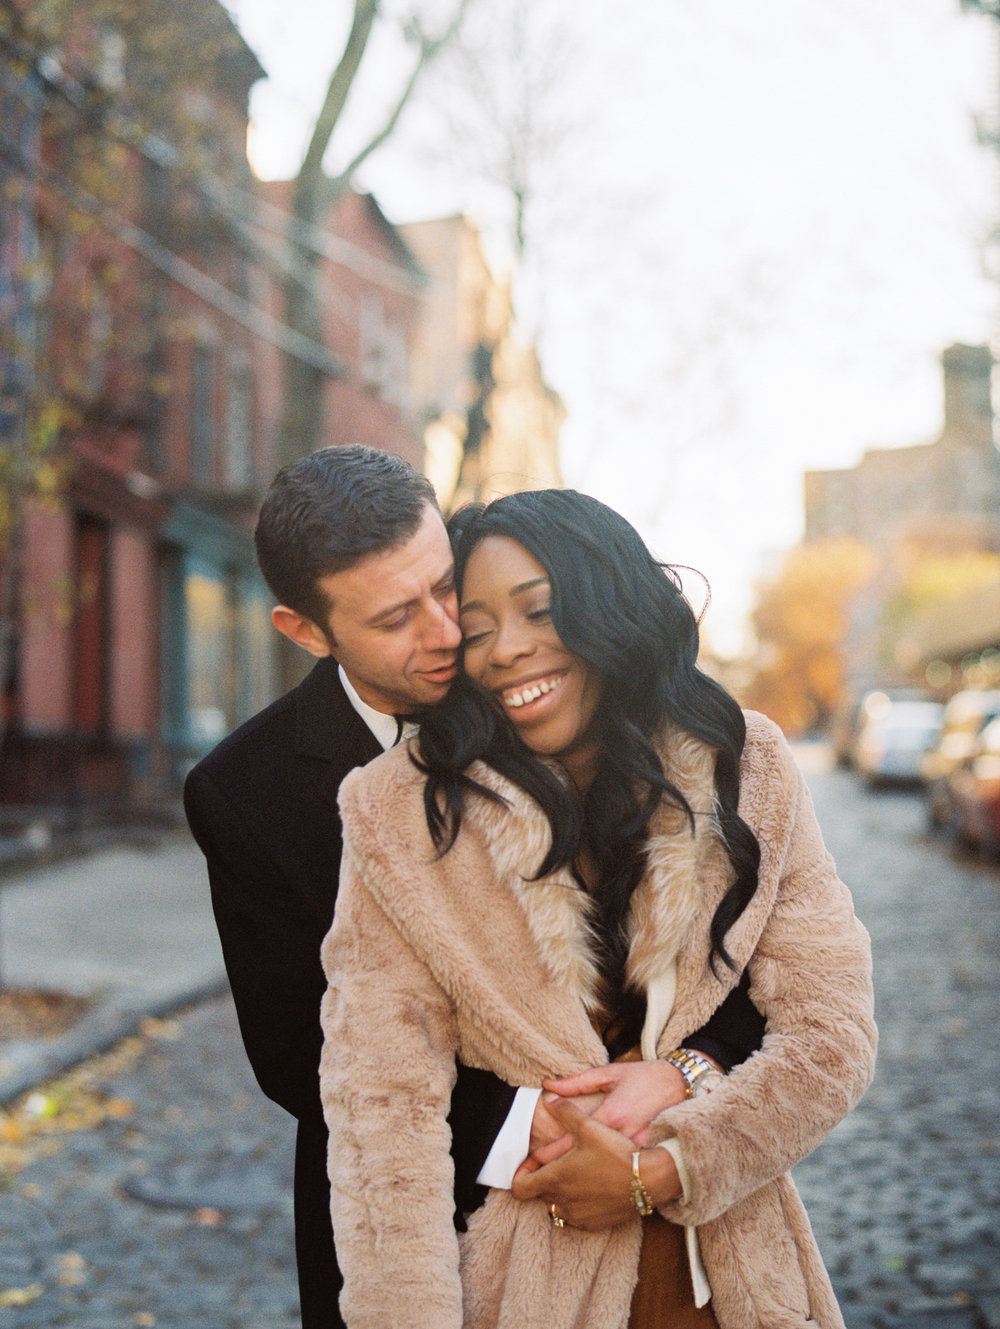 BROOKLYN_ELOPEMENT_SAMMBLAKE_NDE_255.jpg